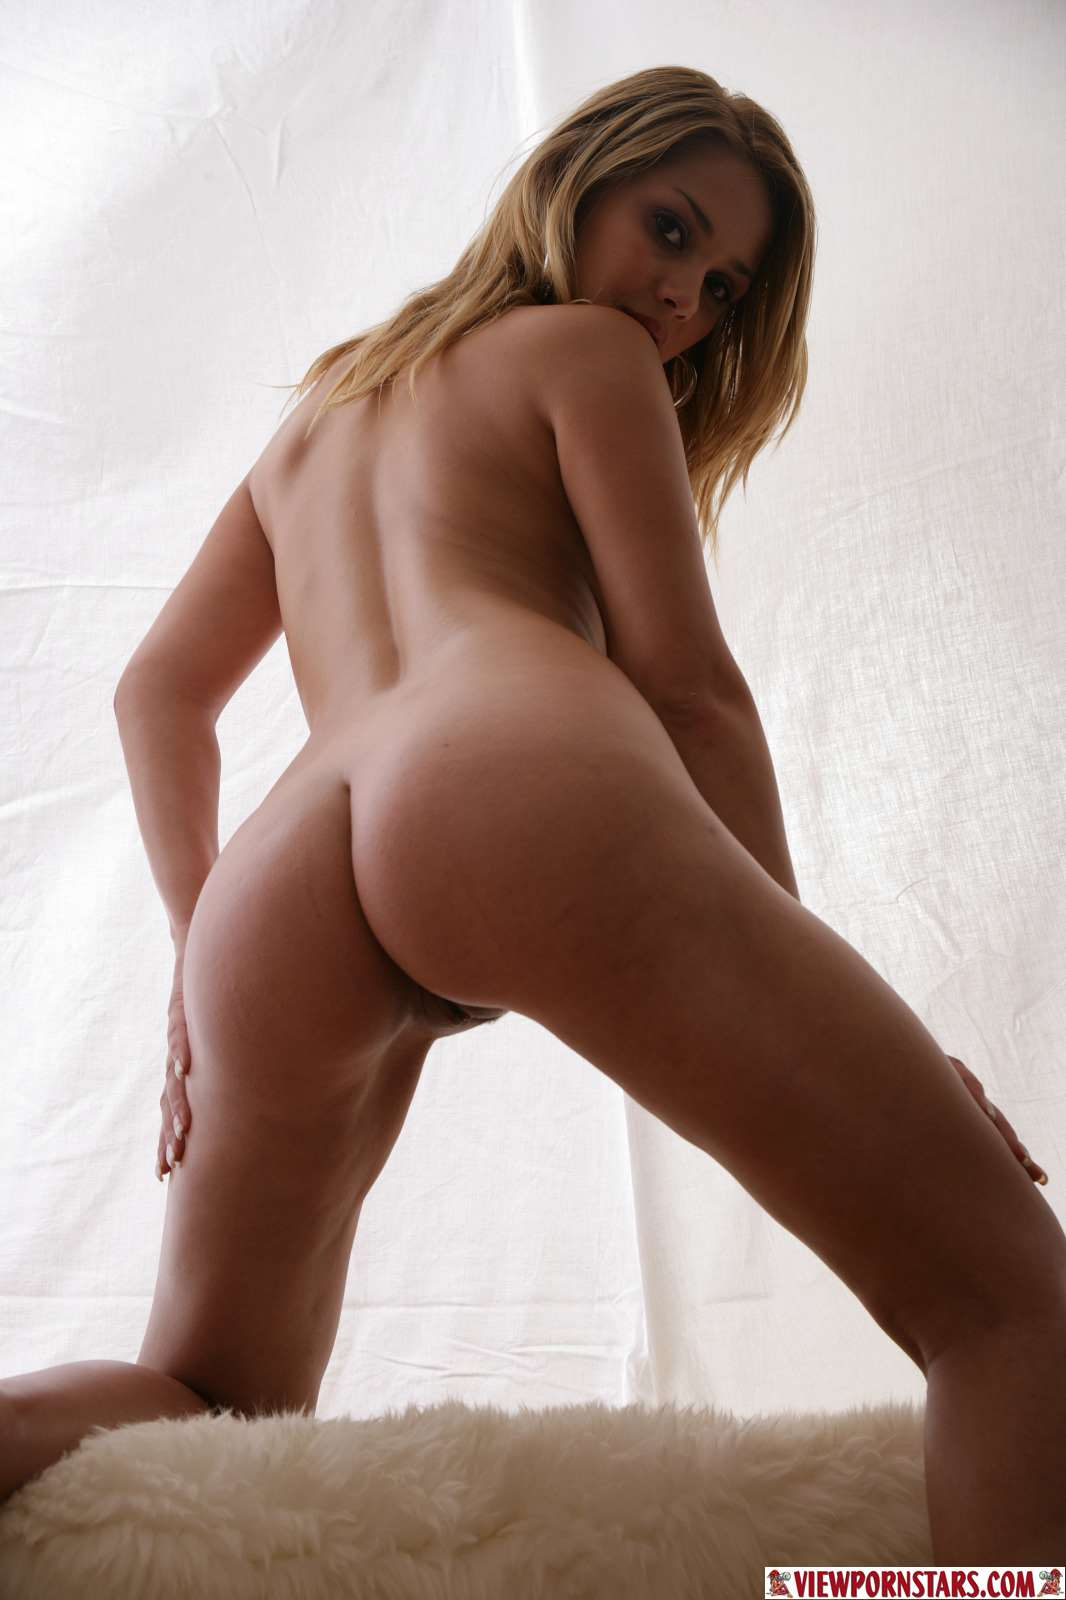 Over pictures and free samples at viewpornstars